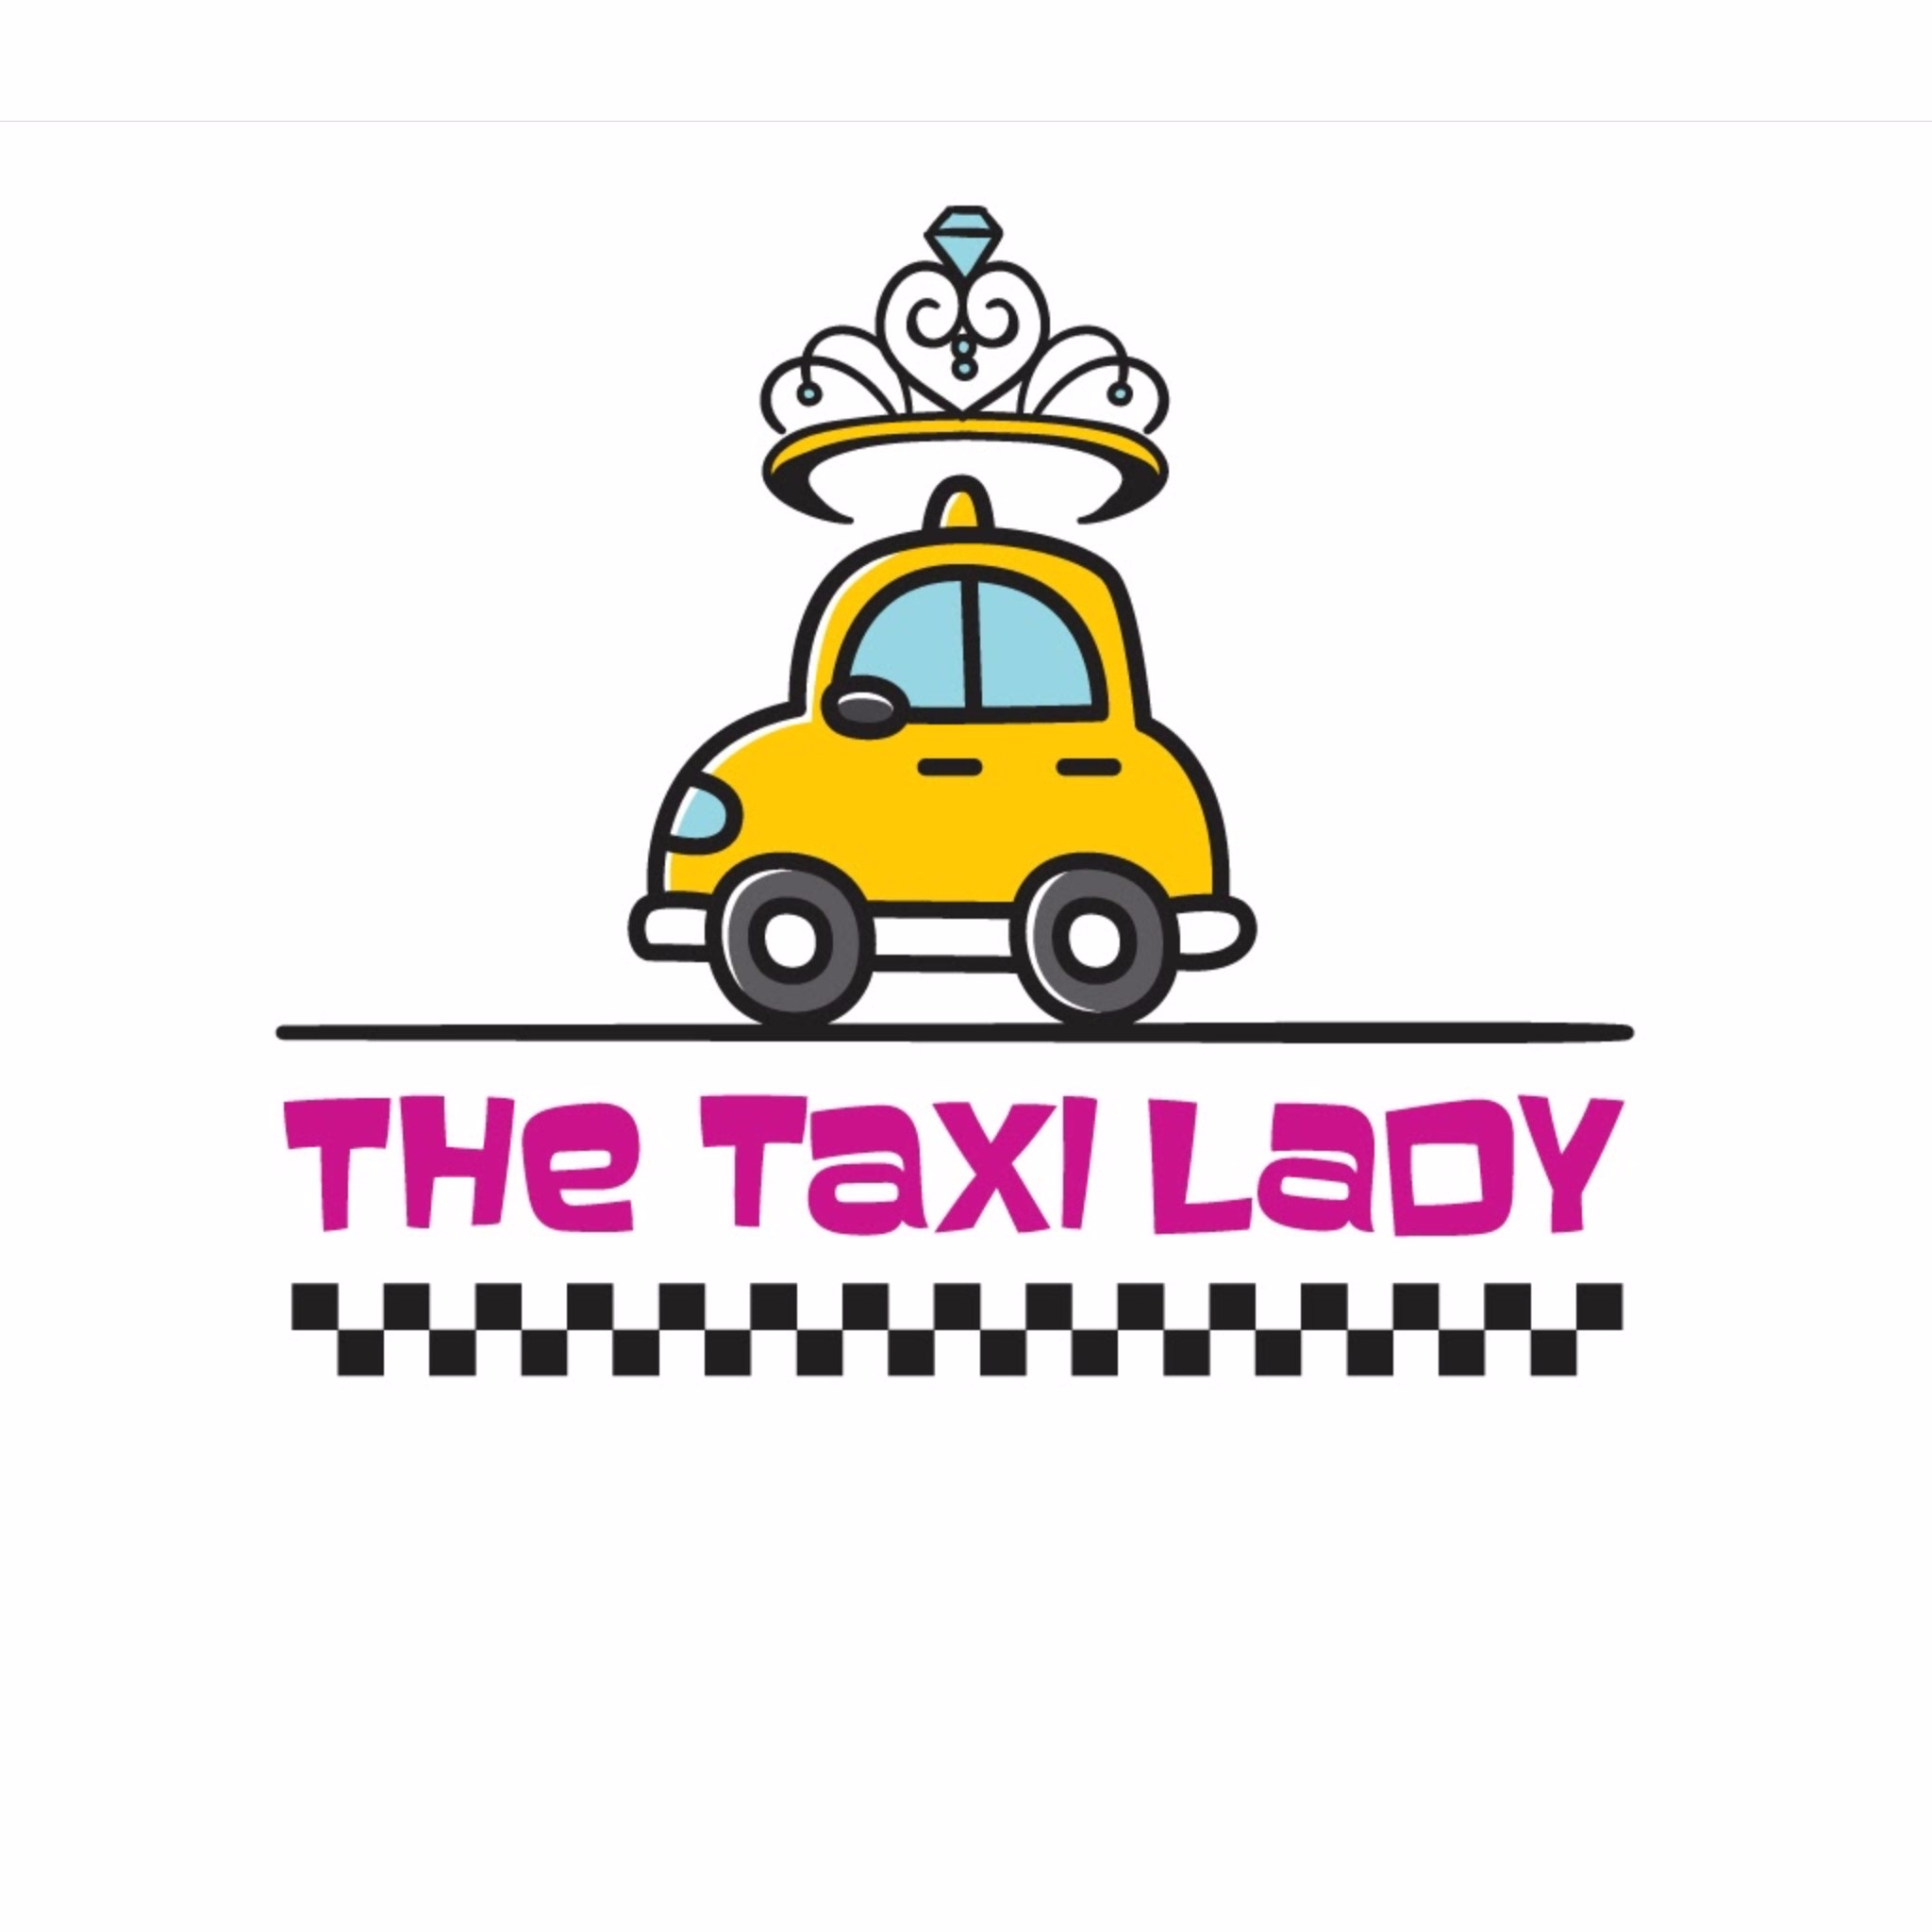 The Taxi Lady